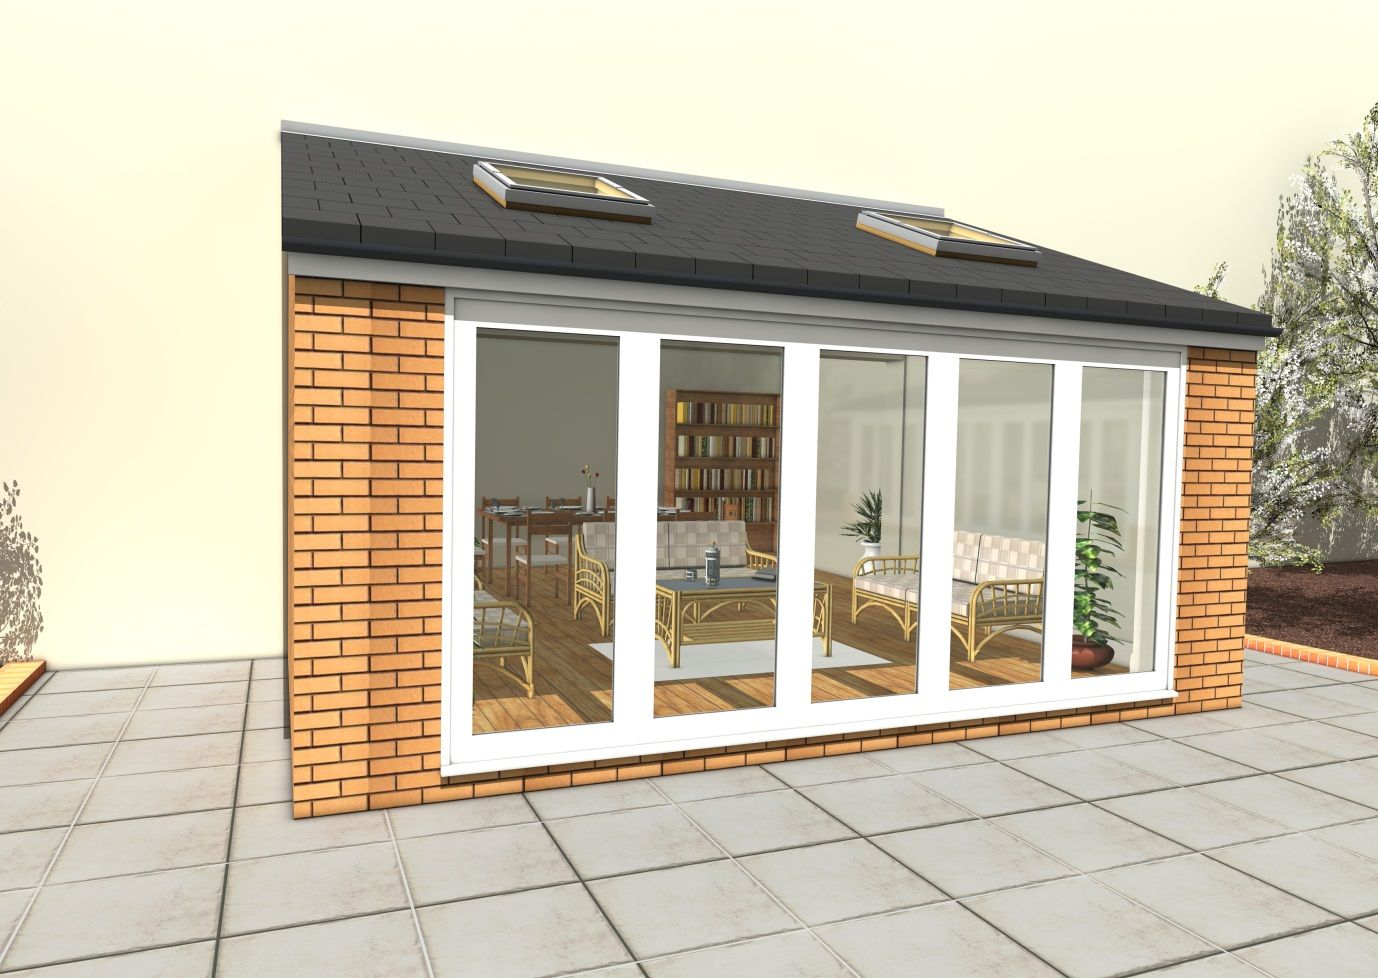 Charming Garden Room Designs Ideas Part - 9: Oliver James Garden Room Extensions Kew Design